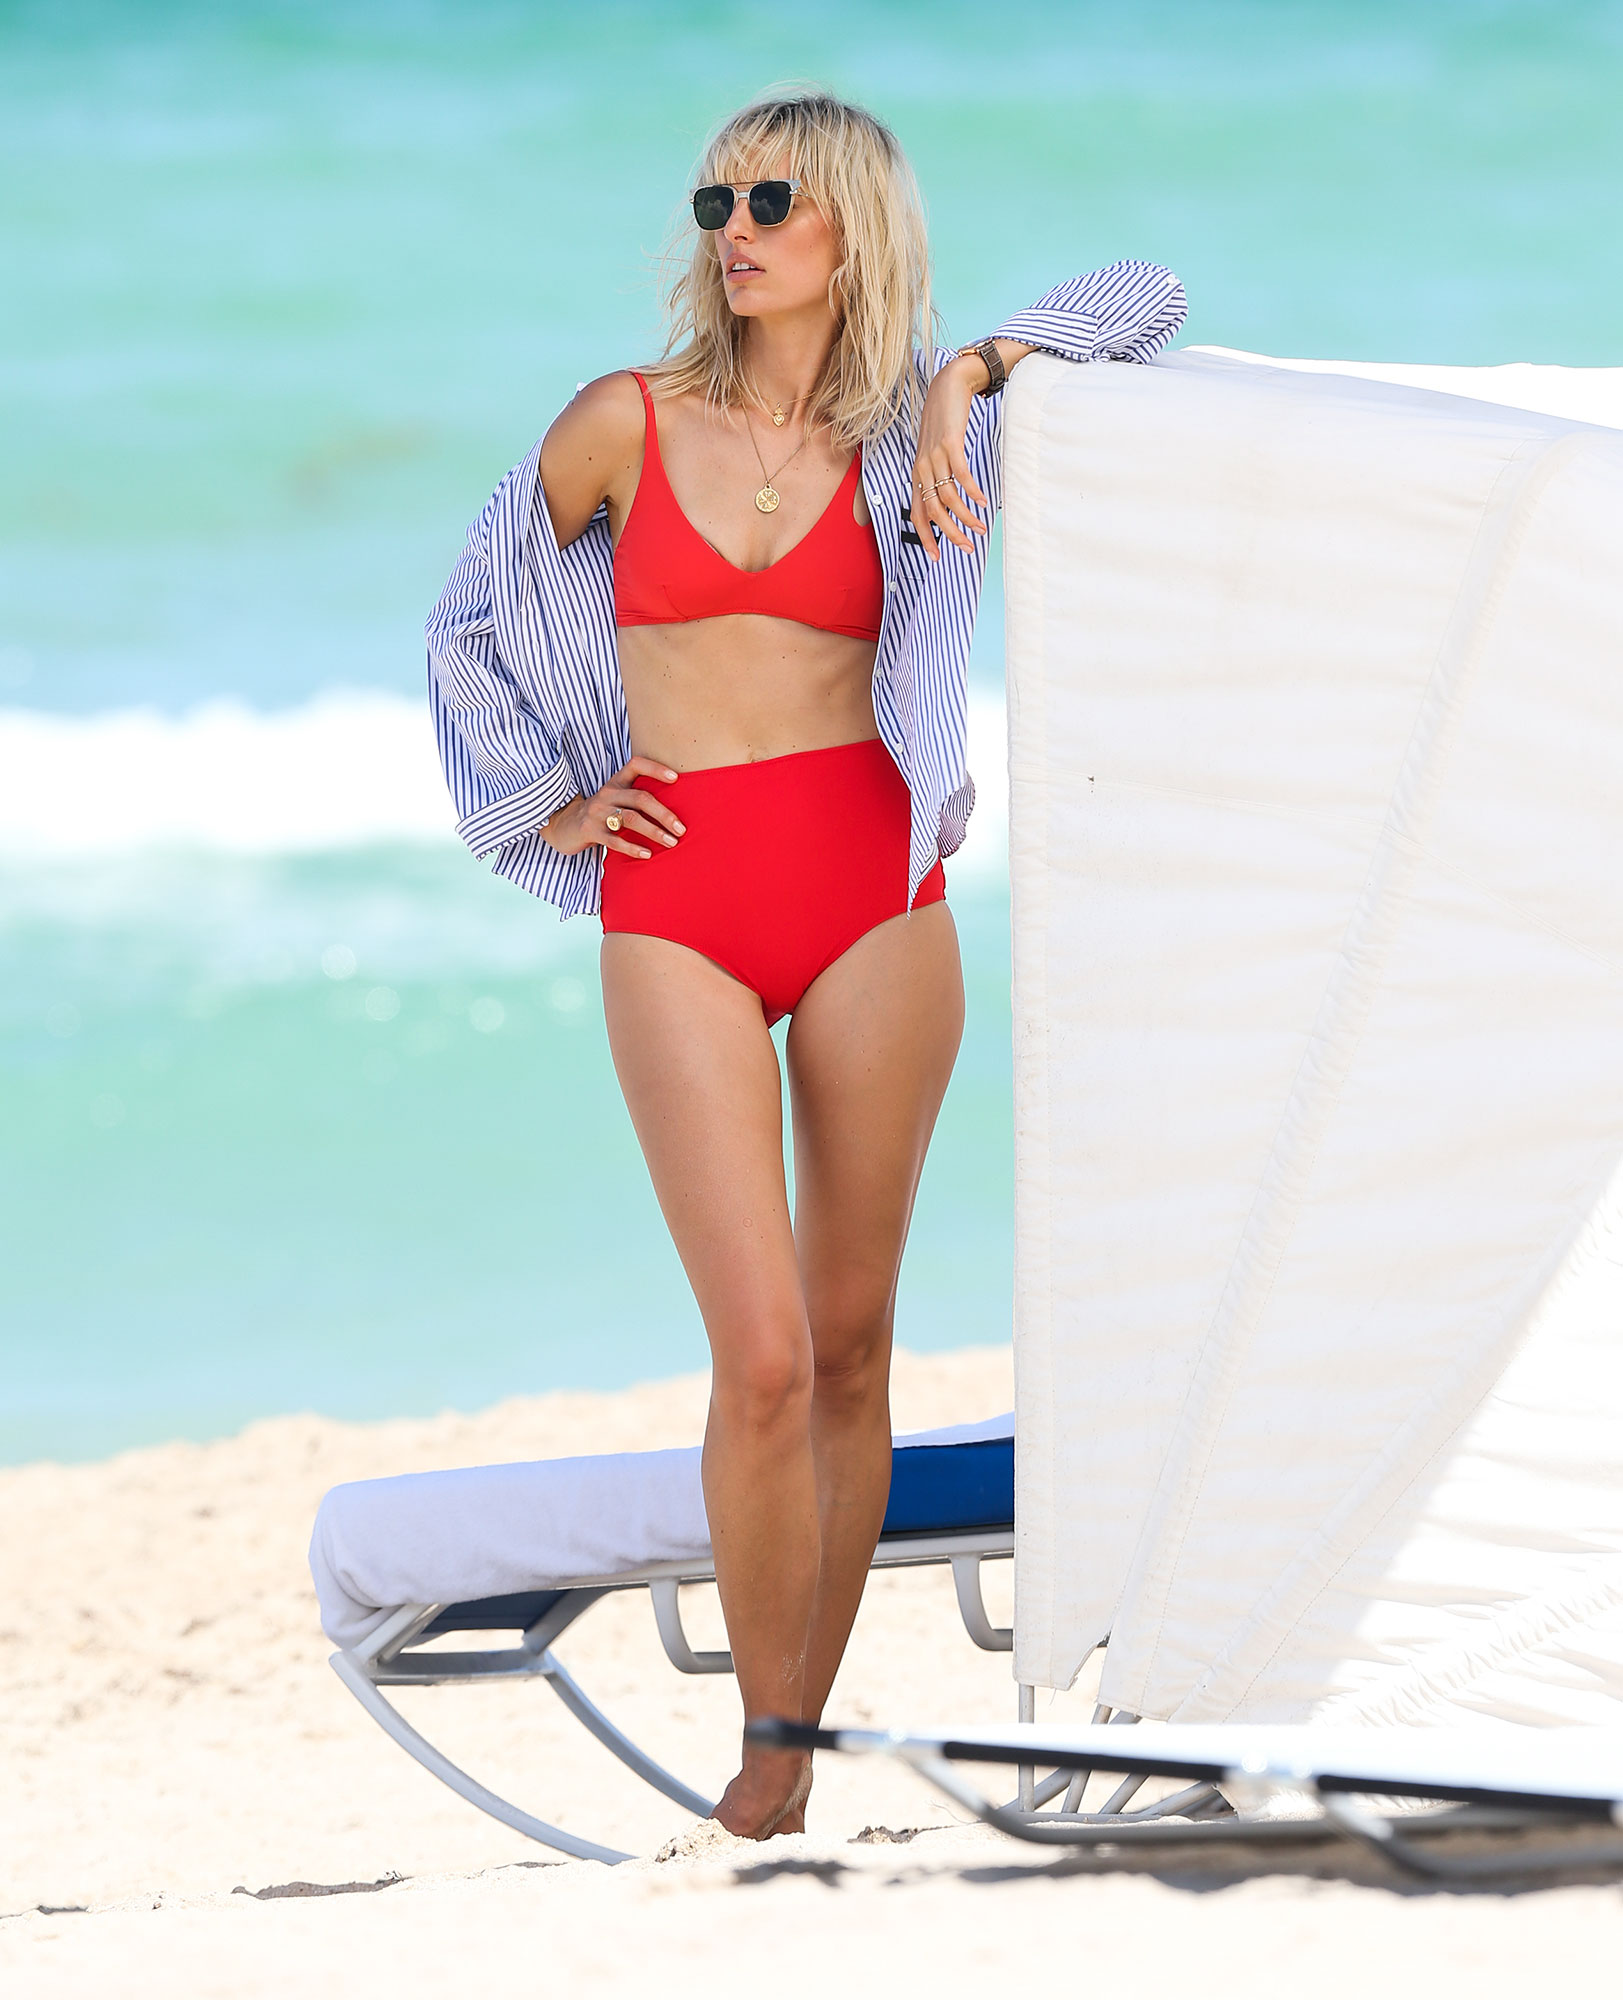 EXCLUSIVE: Karolina Kurkova shows of her supermodel figure as she poses in swimwear for a Hampton's Magazine photo shoot on Miami Beach